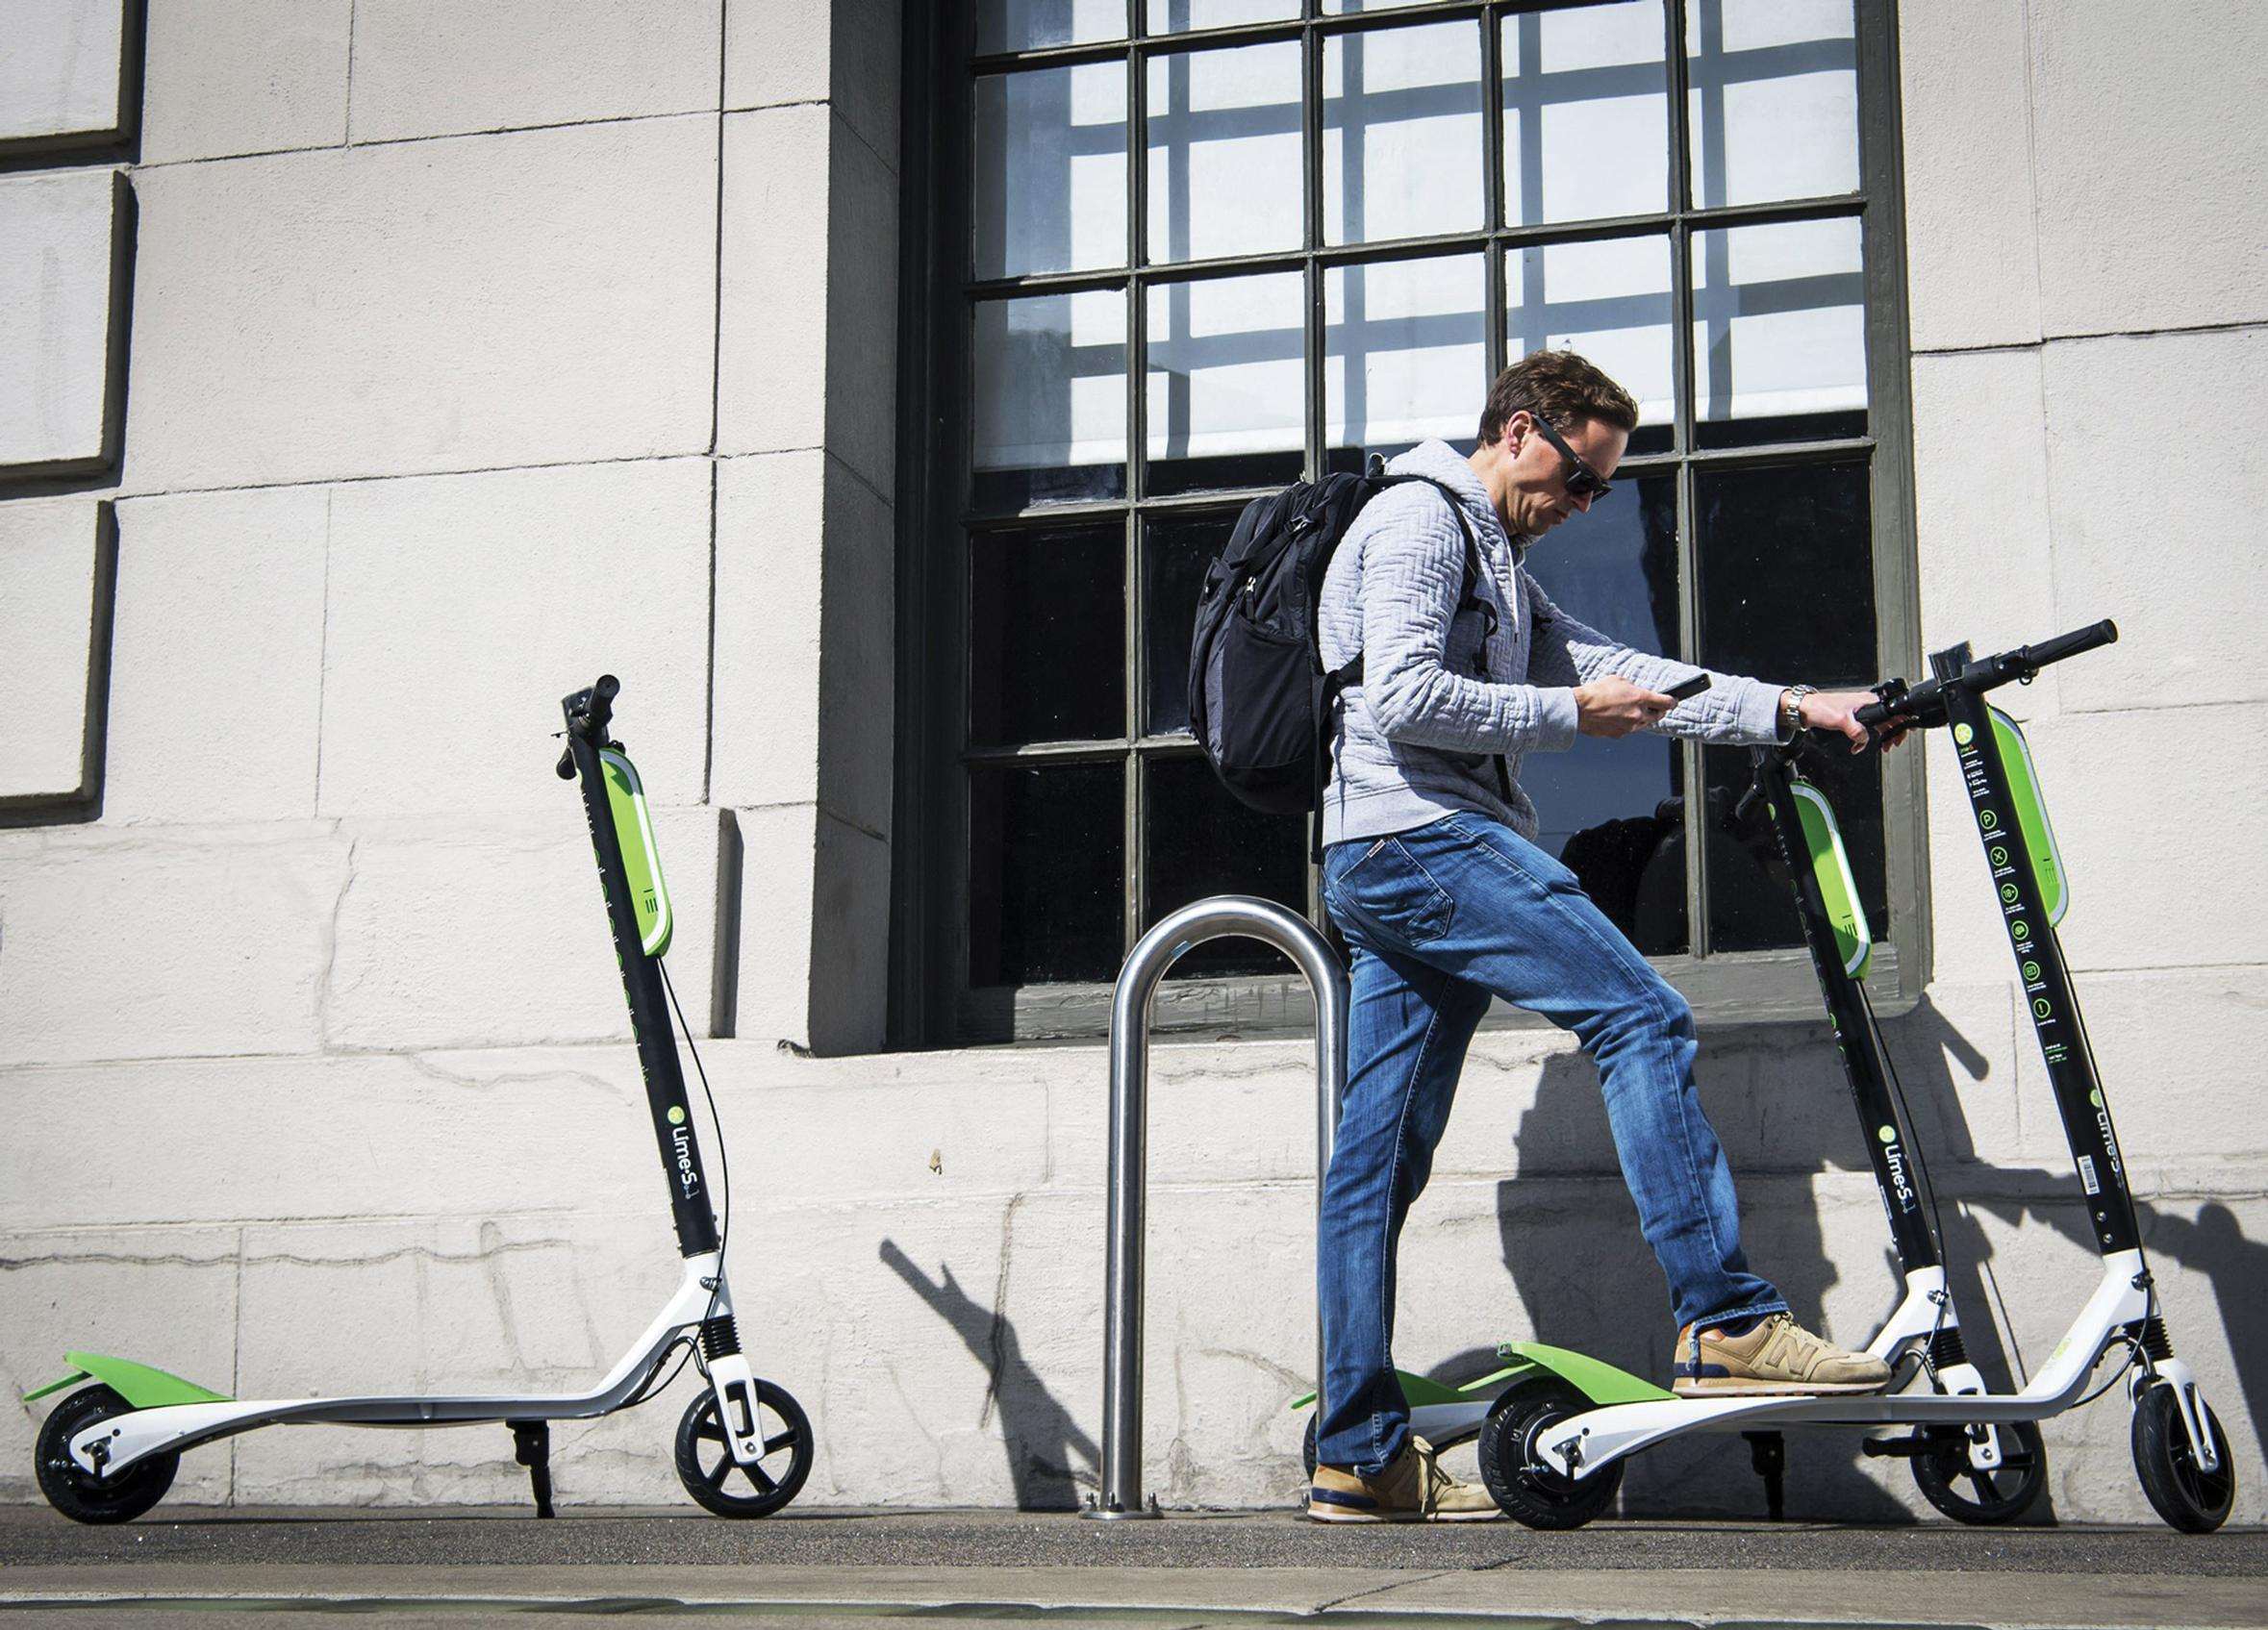 The design of streets may have to change to meet the needs of micromobility such as electric scooters, says the DfT